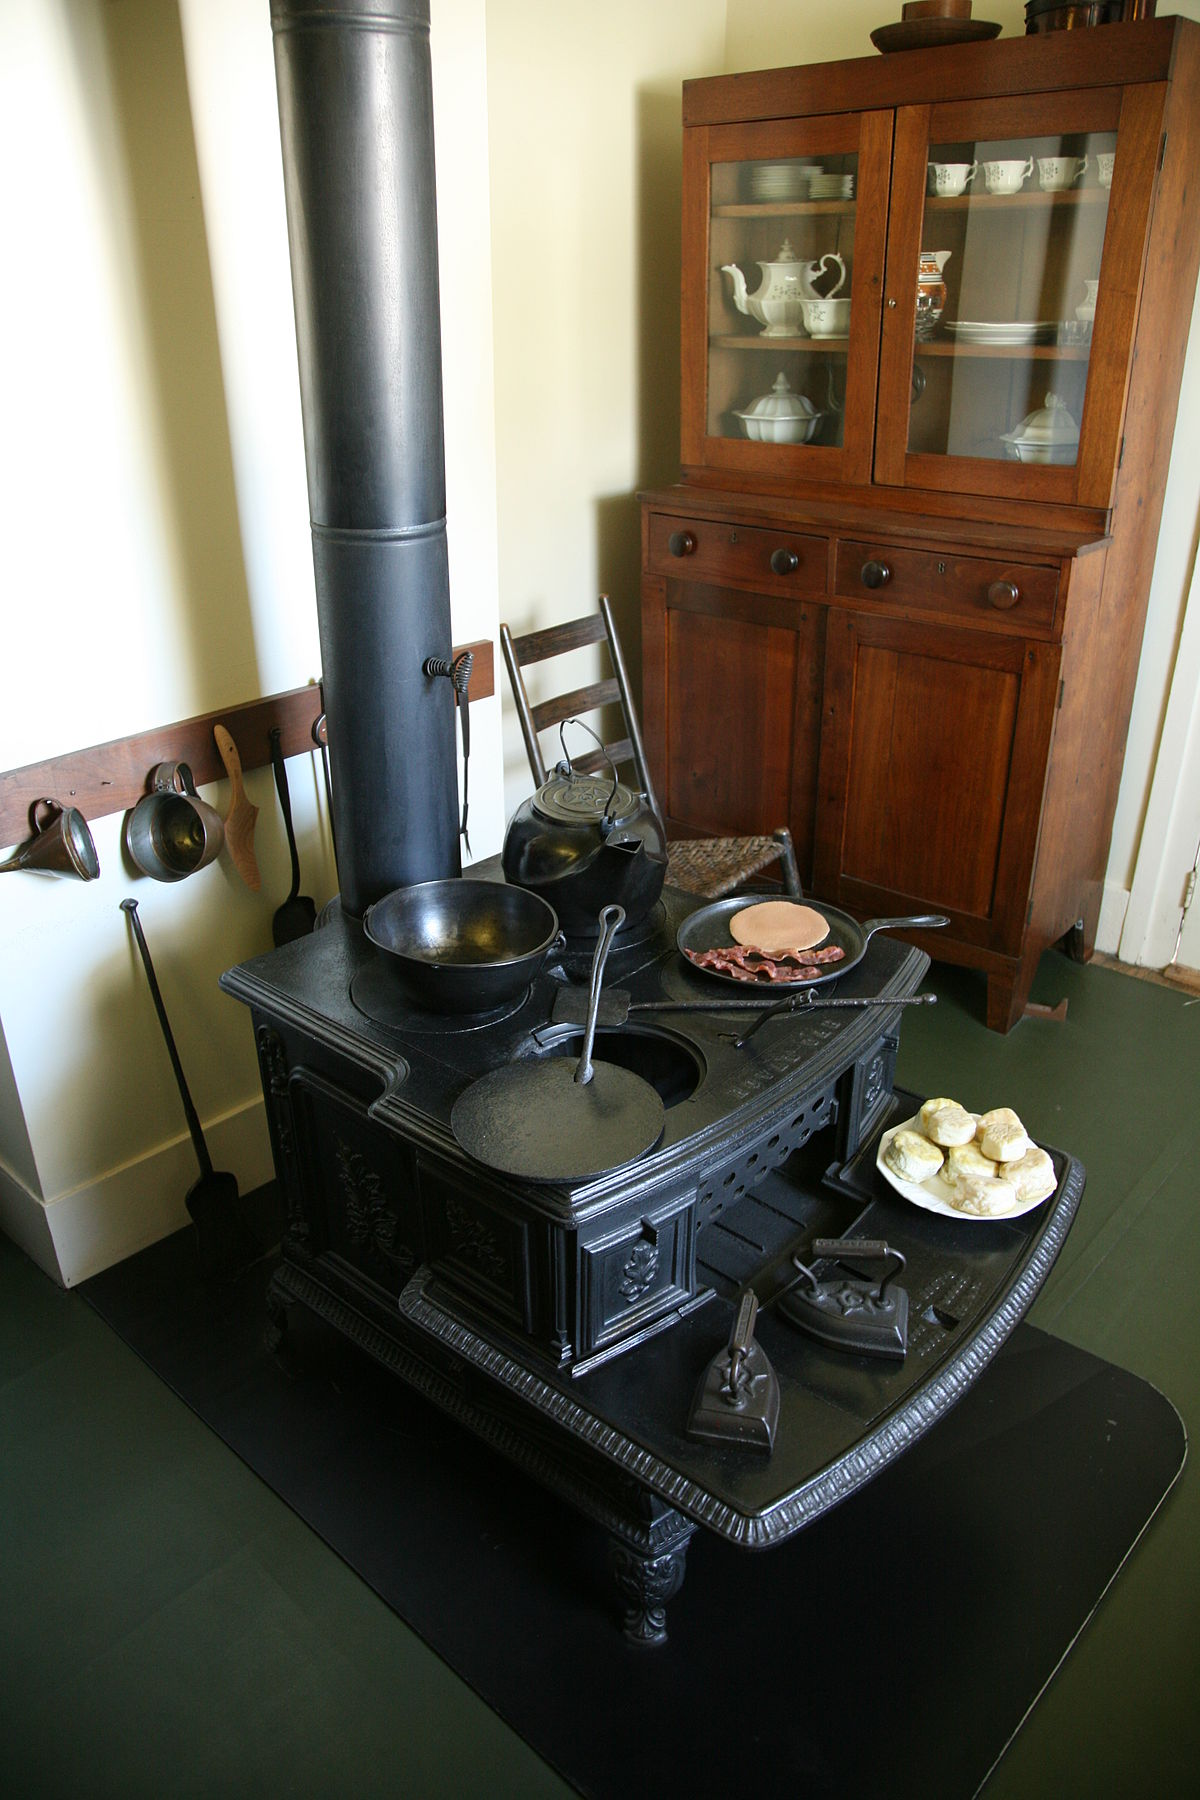 Wood-burning stove - Wikipedia